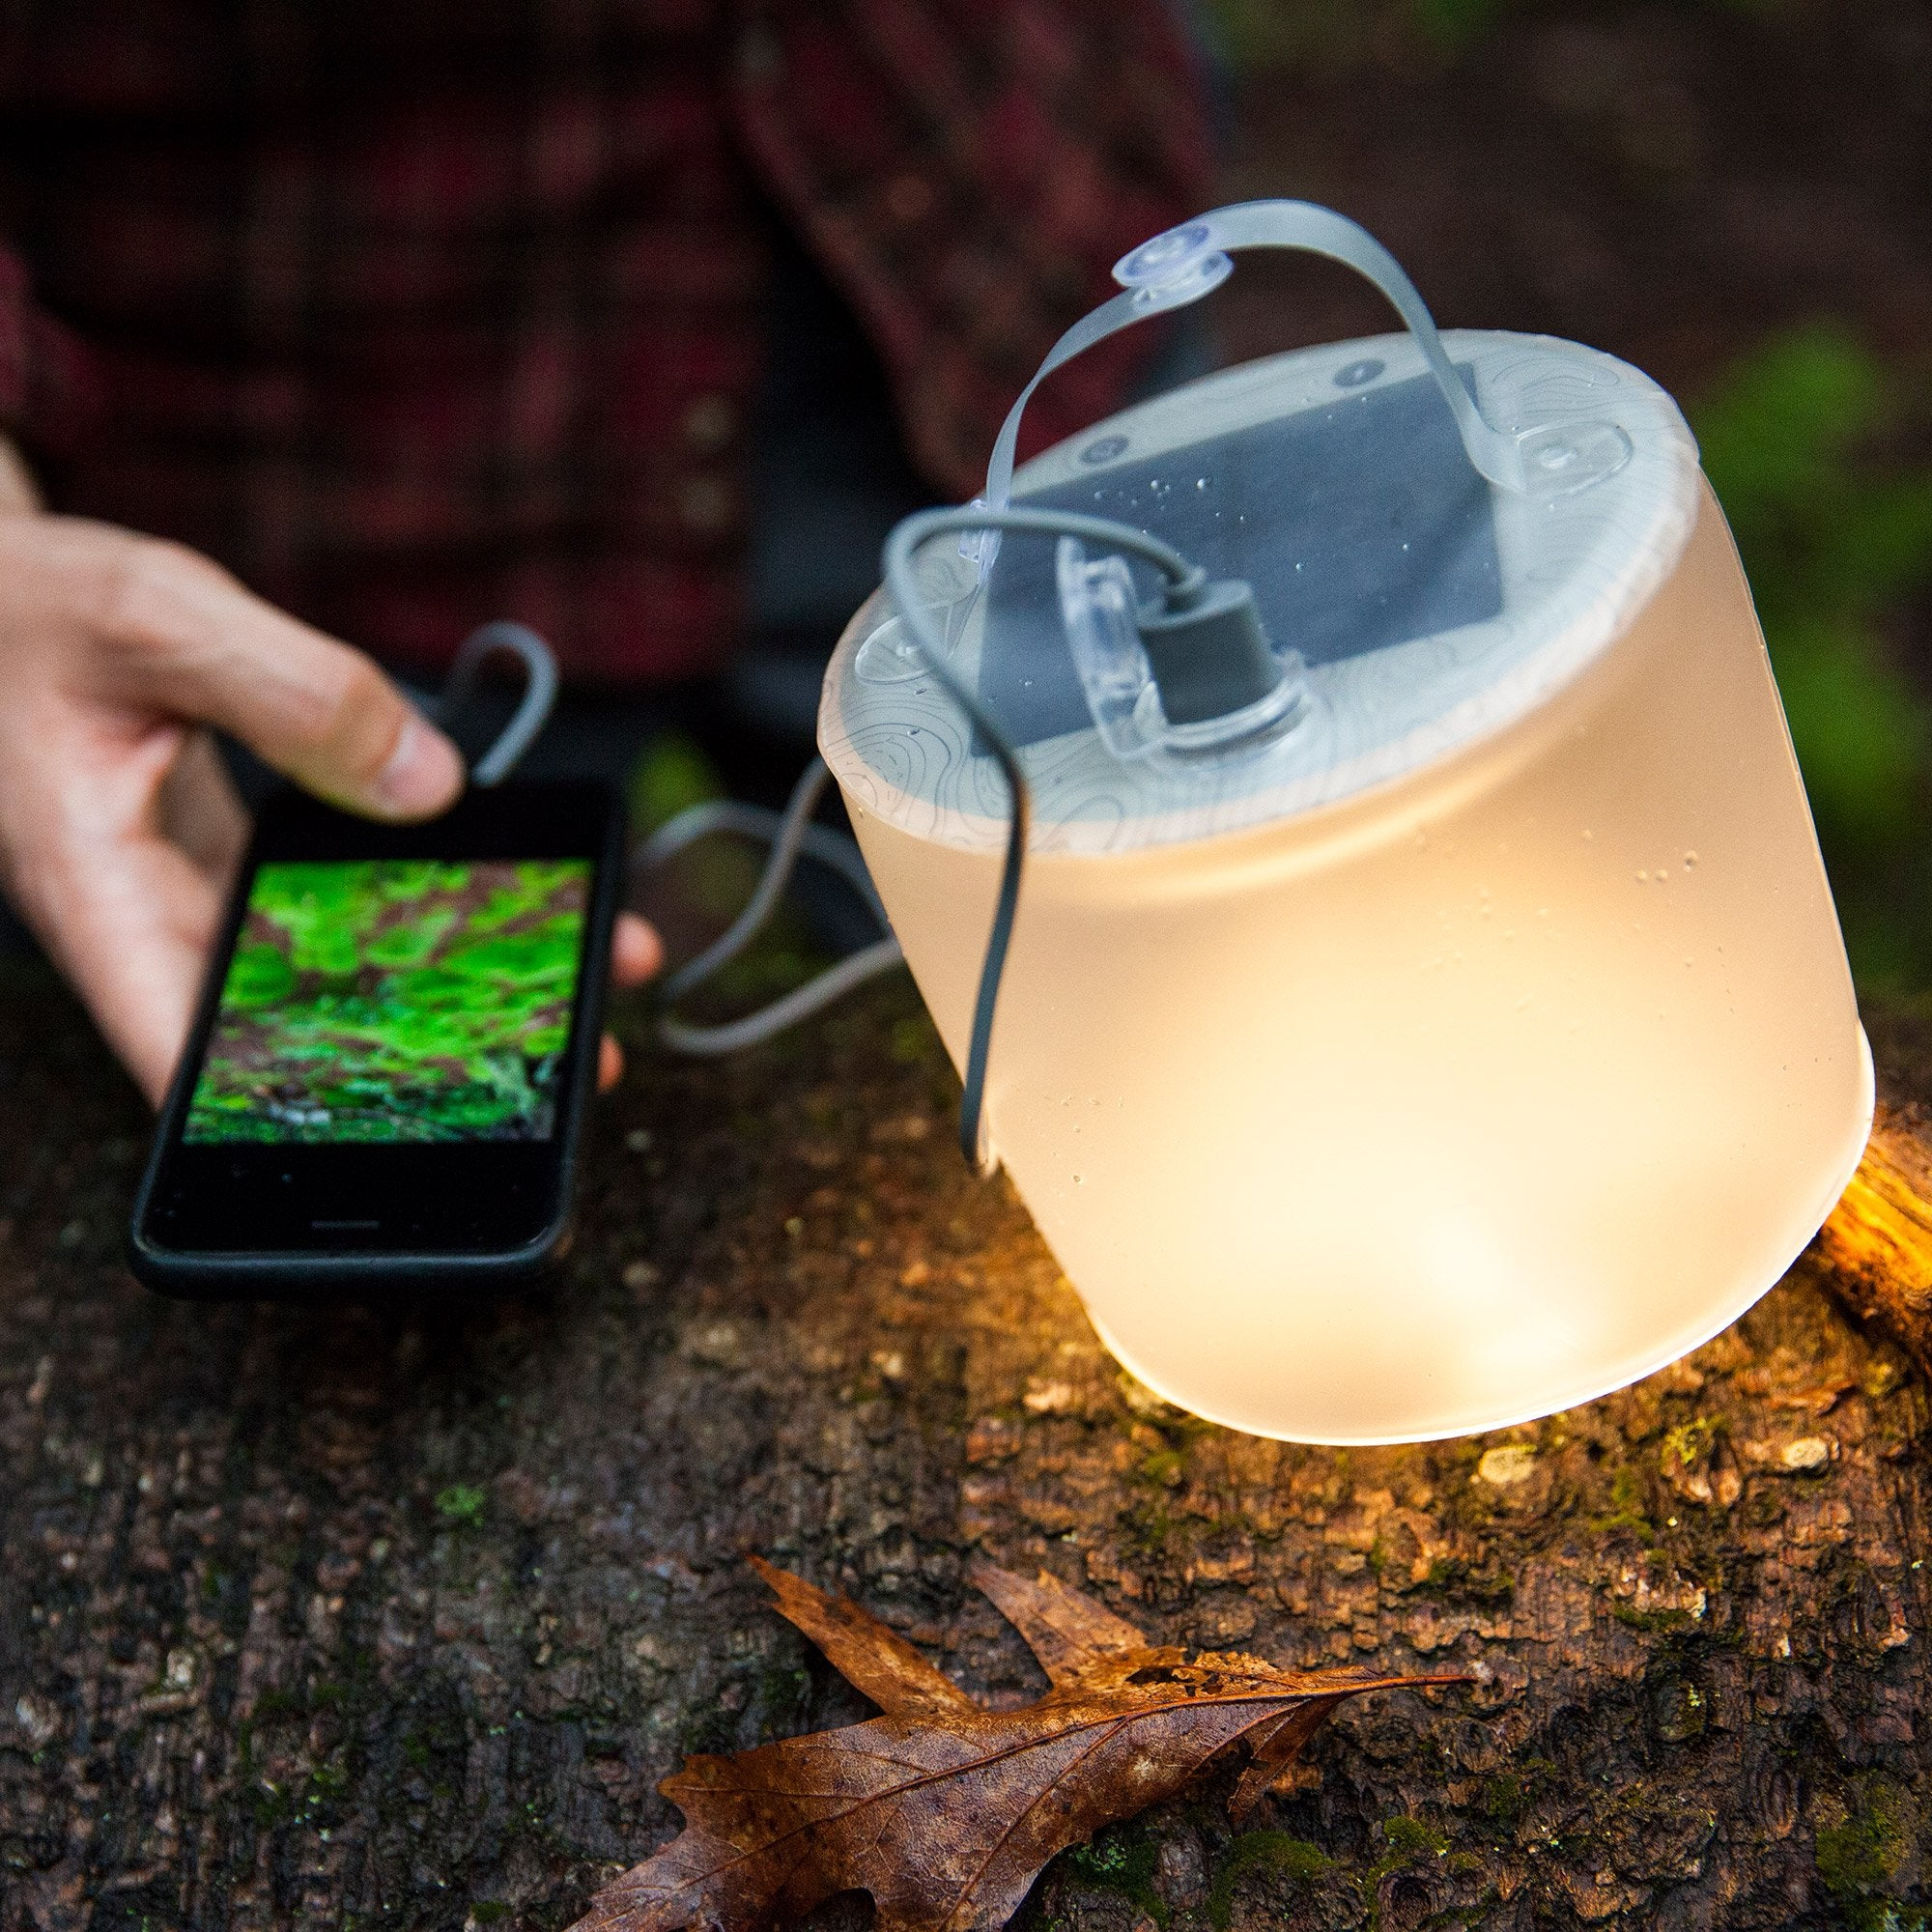 Mpowerd Luci Pro Lux: Solar Inflatable Lantern + Charger in Matte/grey